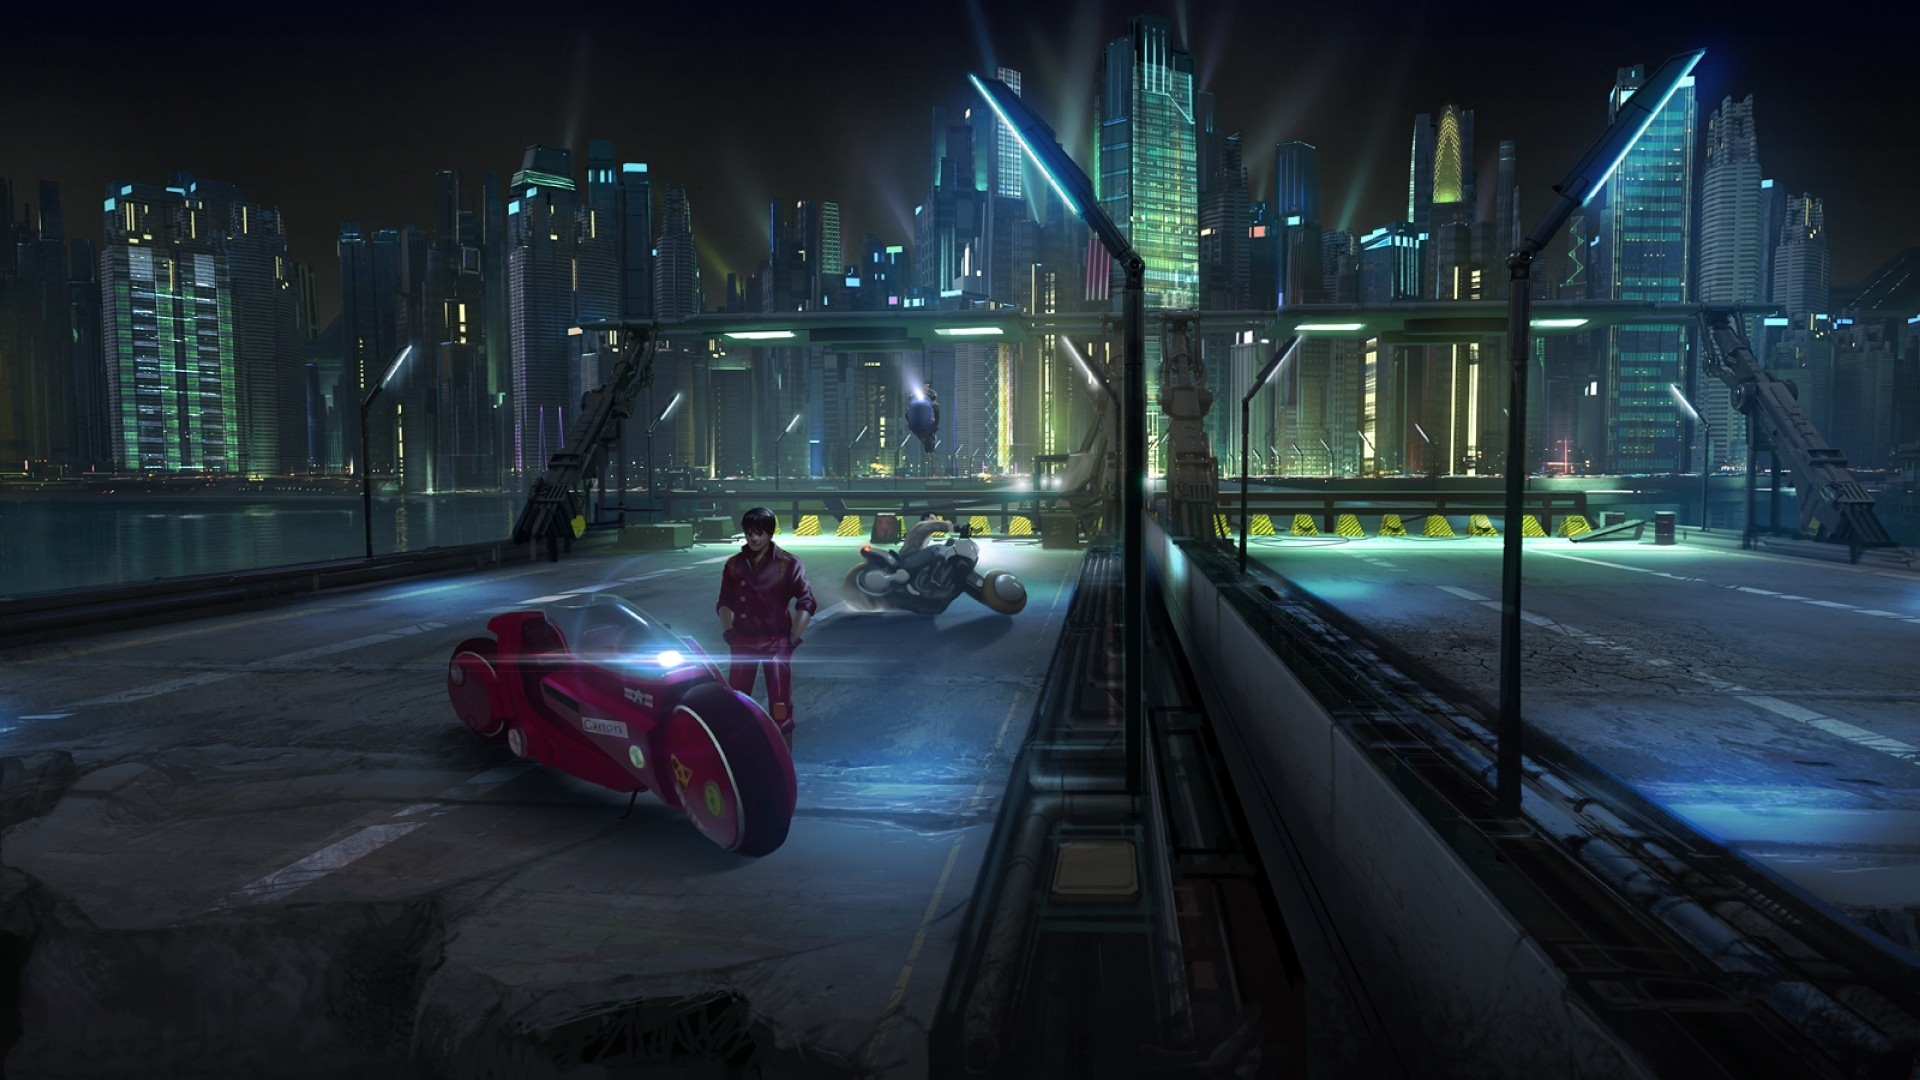 Akira full hd wallpaper and background 1920x1080 id 658581 for Wallpaper hd home movie